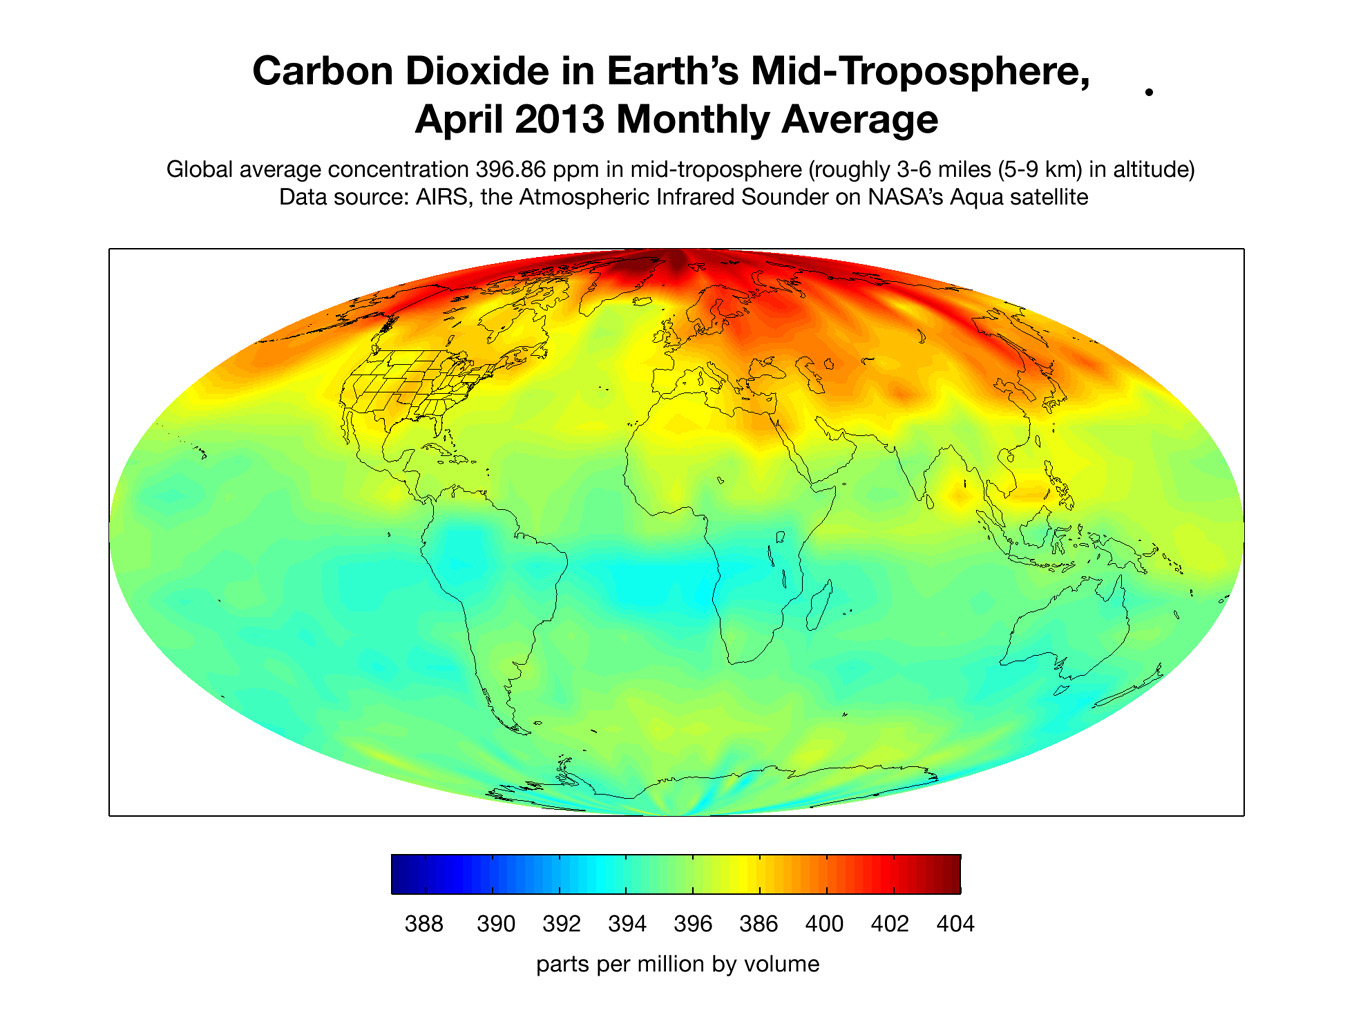 This map created with data from the AIRS on NASA's Aqua satellite shows the concentration of carbon dioxide in Earth's mid-troposphere, located roughly between 3 to 6 miles (5 to 9 kilometers) in altitude.